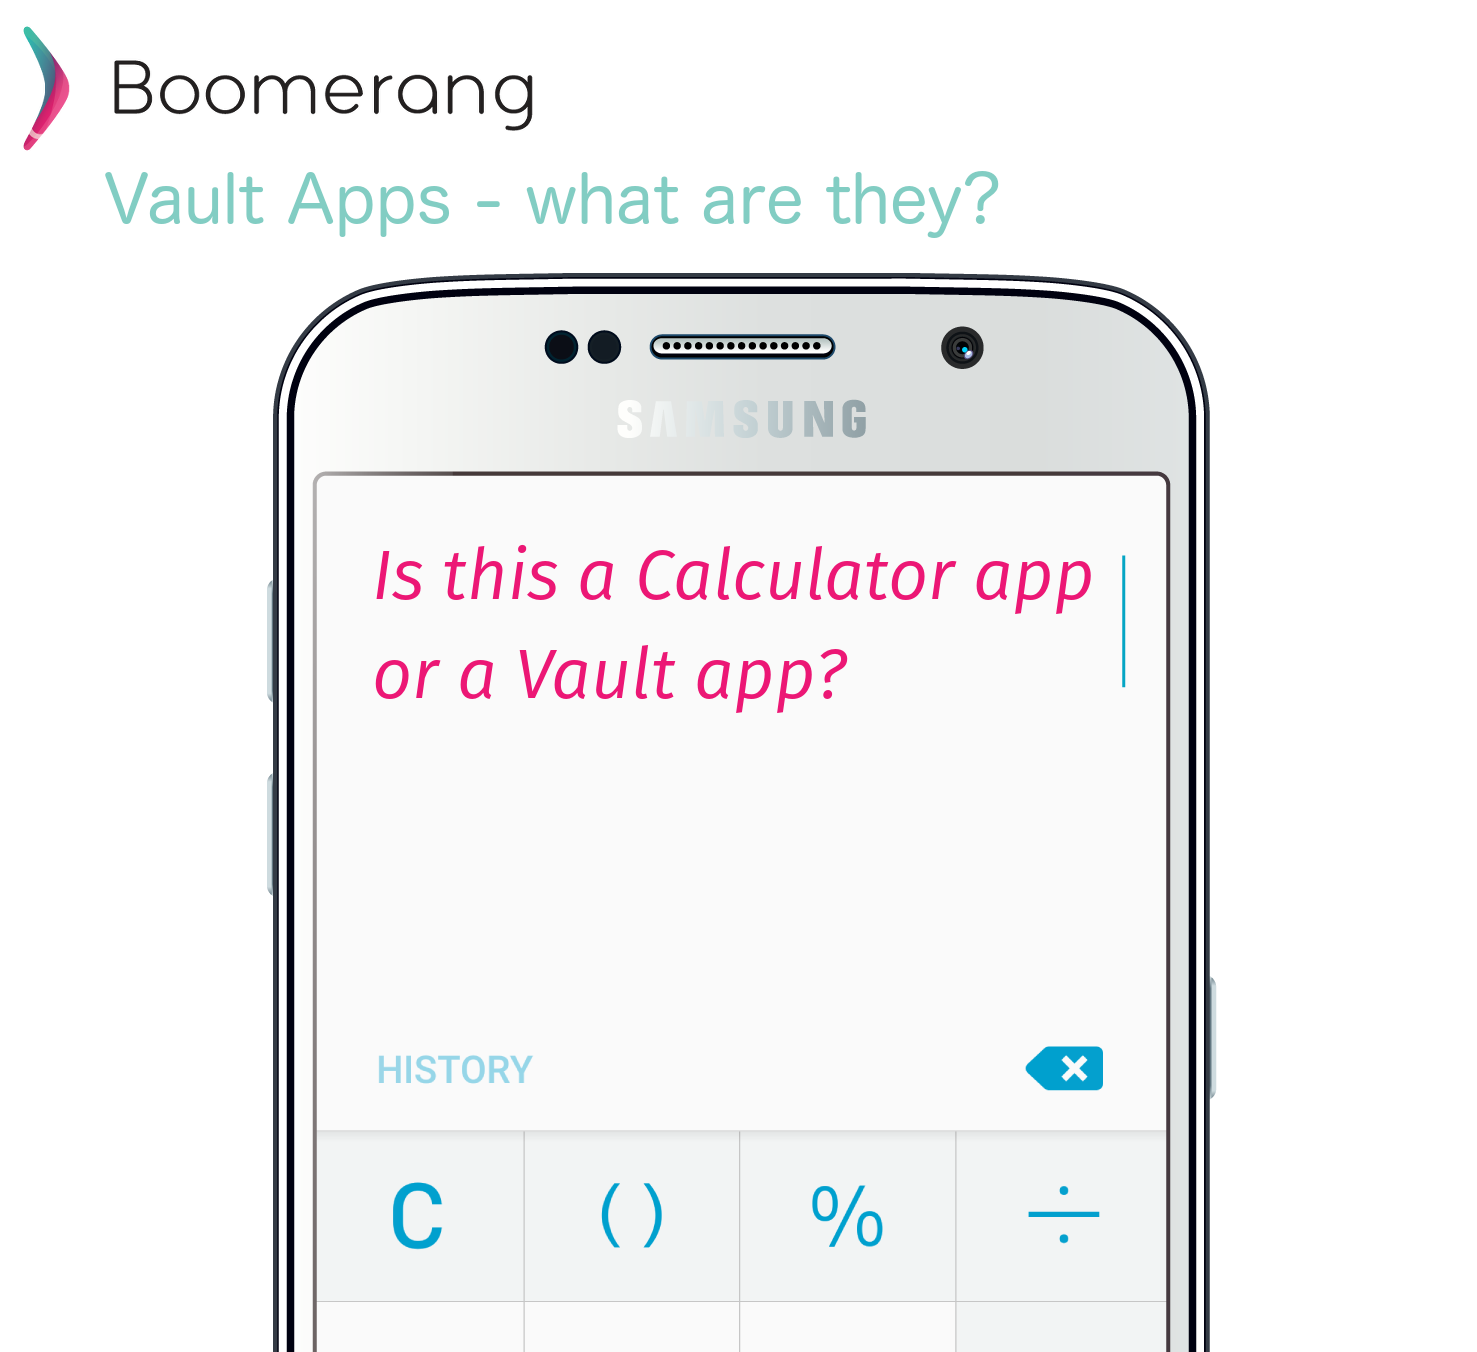 Boomerang Parental Control - Vault Apps